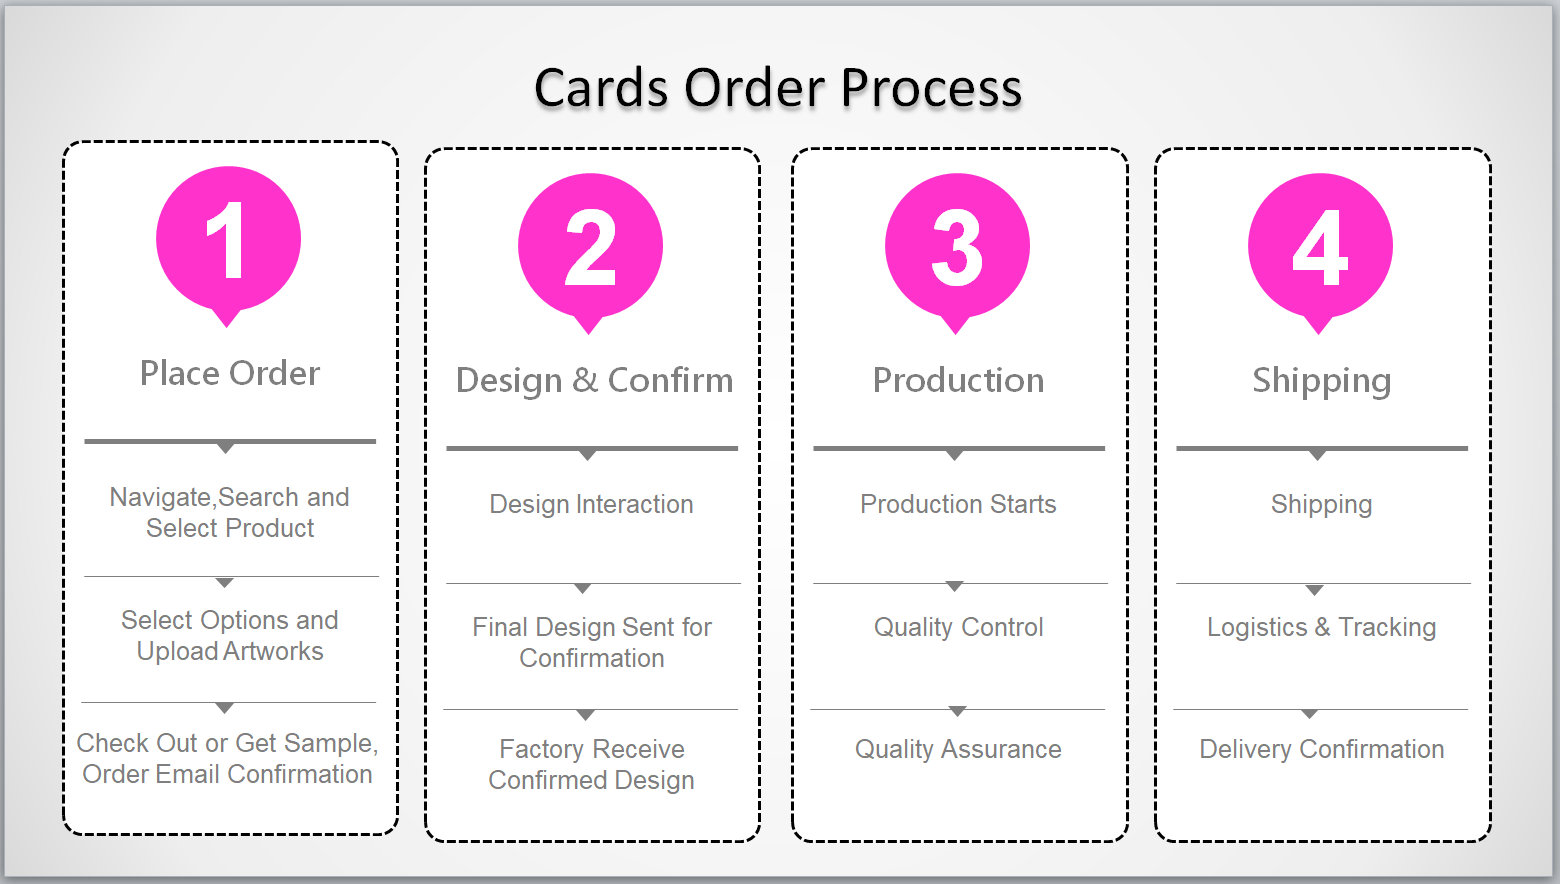 Cards ordering steps and process